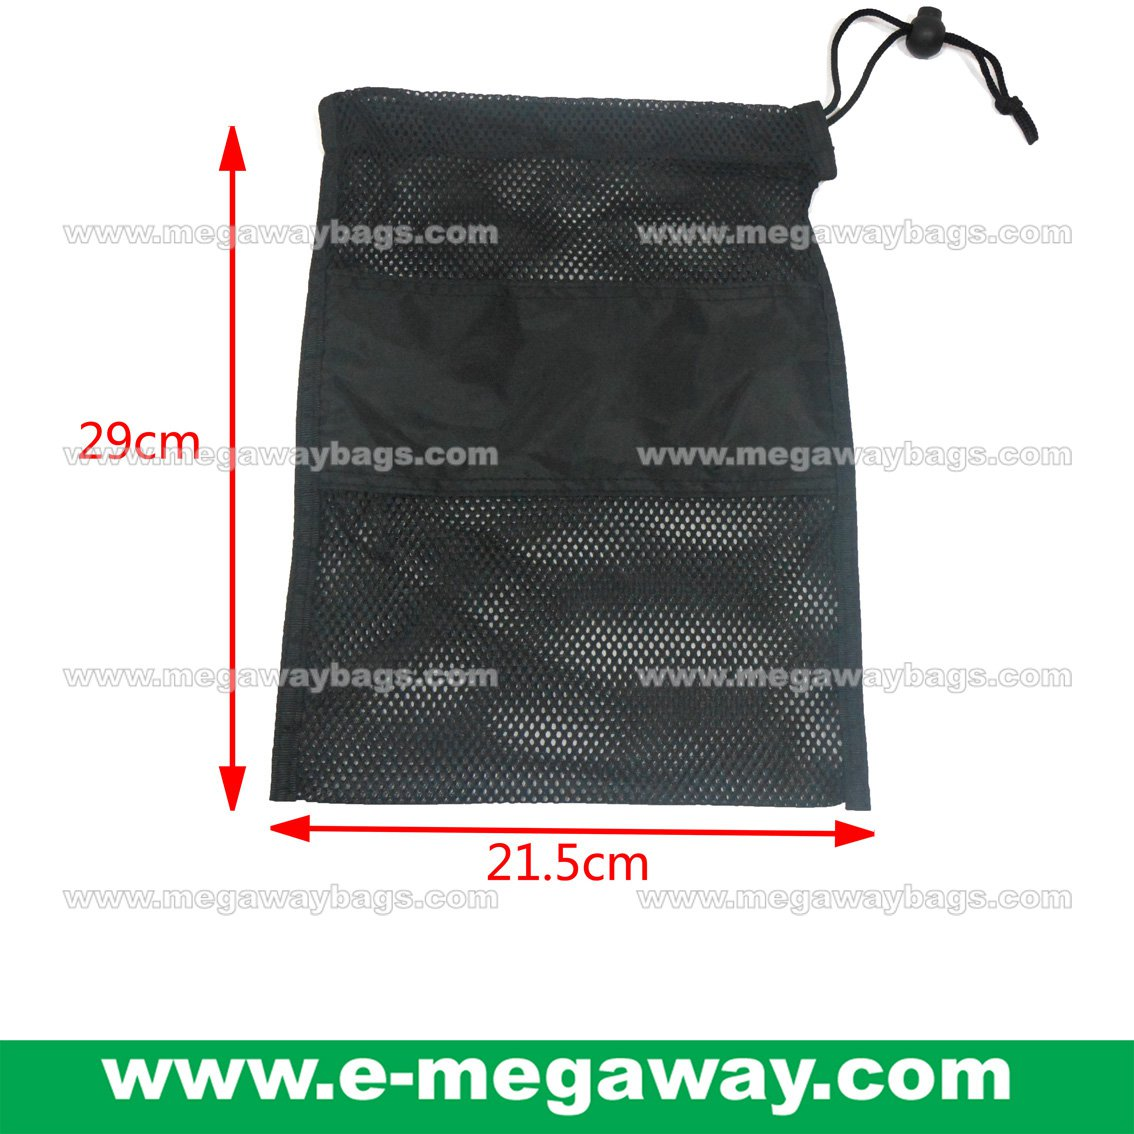 Black Mesh Bag Draw Sting Pouch Stopper Garment travel Packaging Pack MegawayBags #CC-0939A1